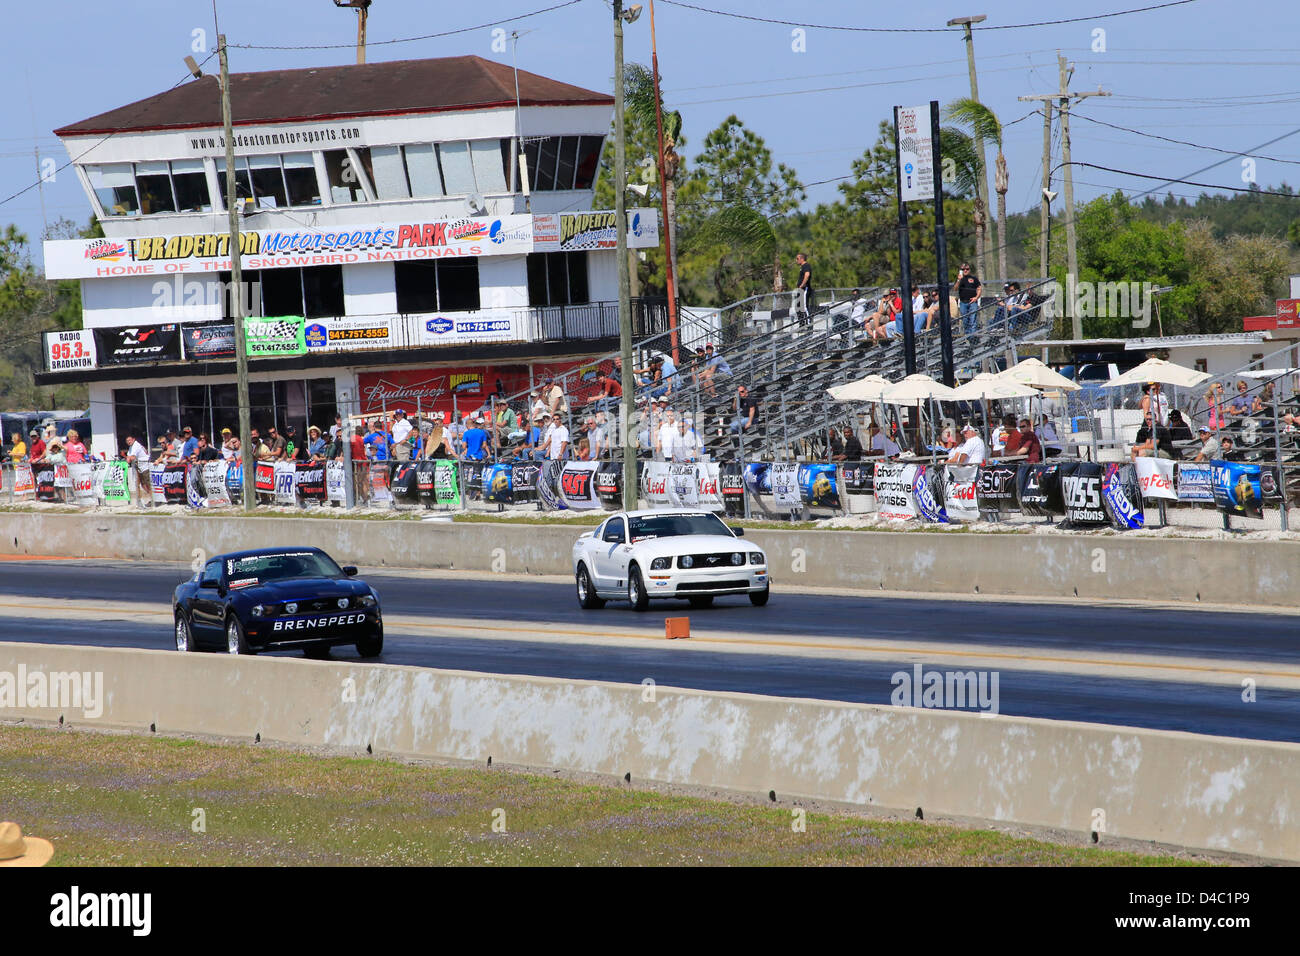 Bradenton Drag Strip >> Drag Racing At Bradenton Raceway In Florida Usa Stock Photo